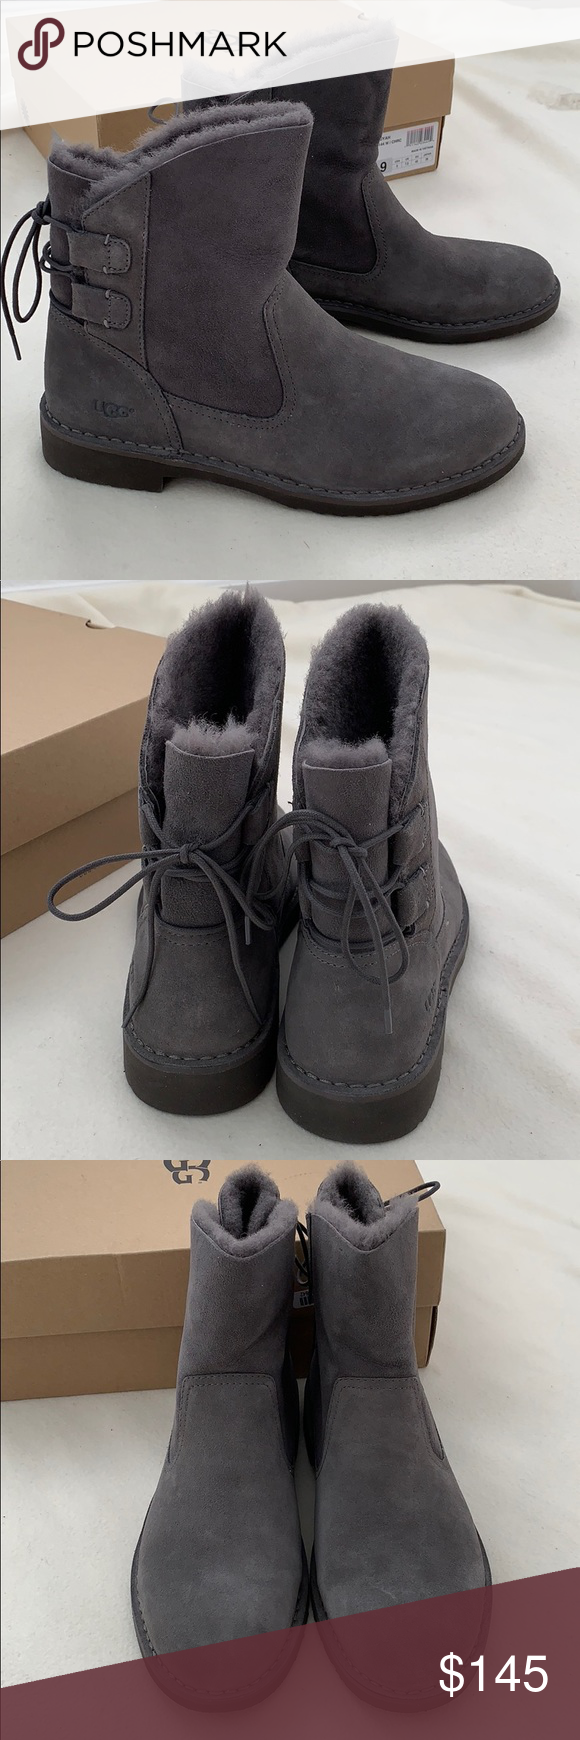 69a043ec15e Brand new authentic Naiyah UGG boots New in box UGG Shoes Winter ...